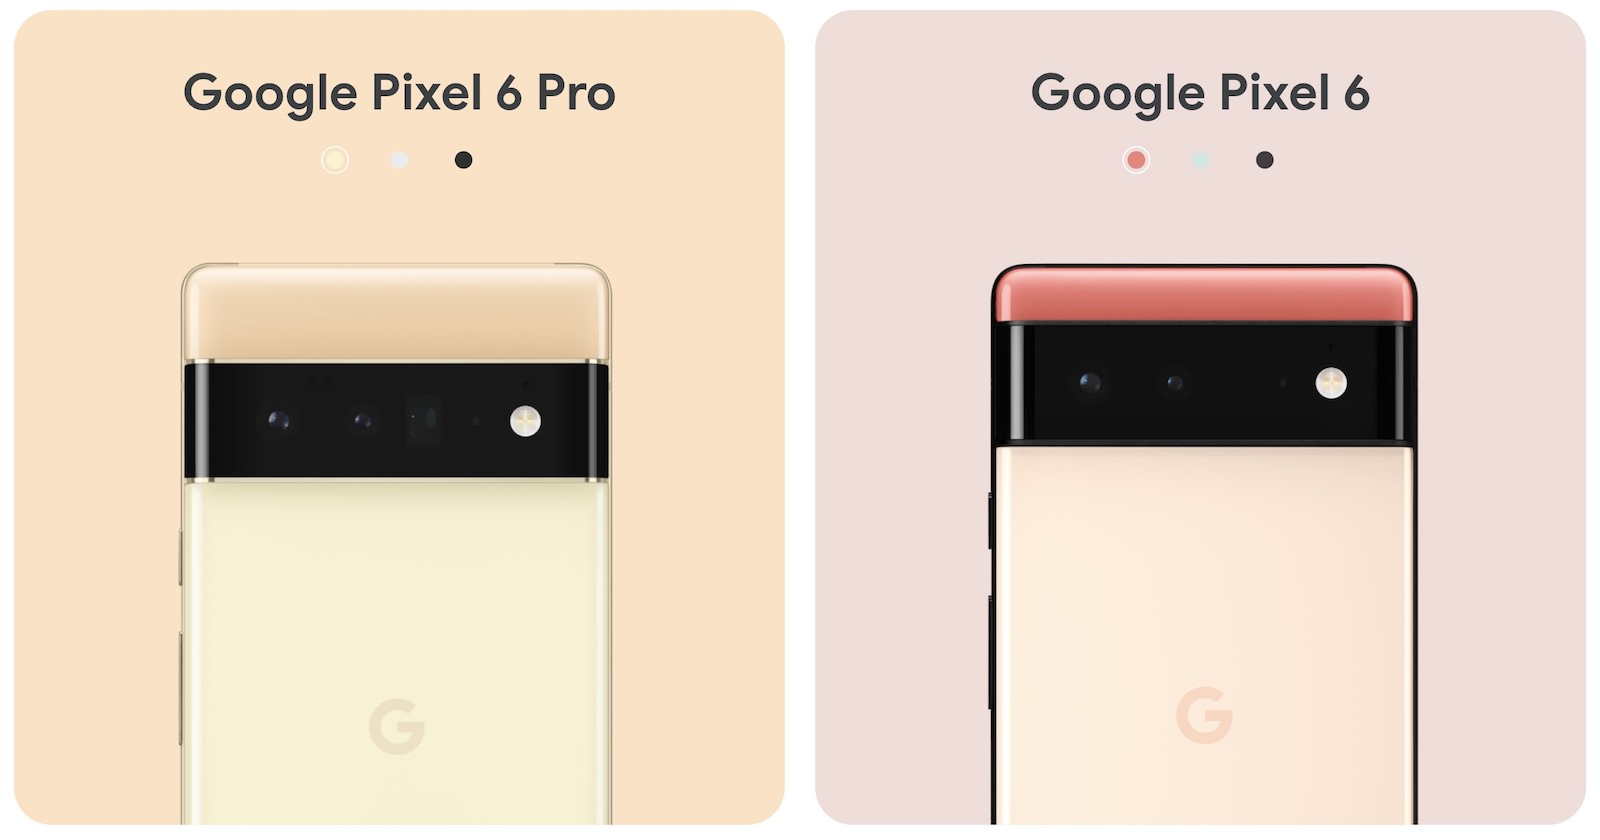 Google Pixel 6 and 6 pro release 3